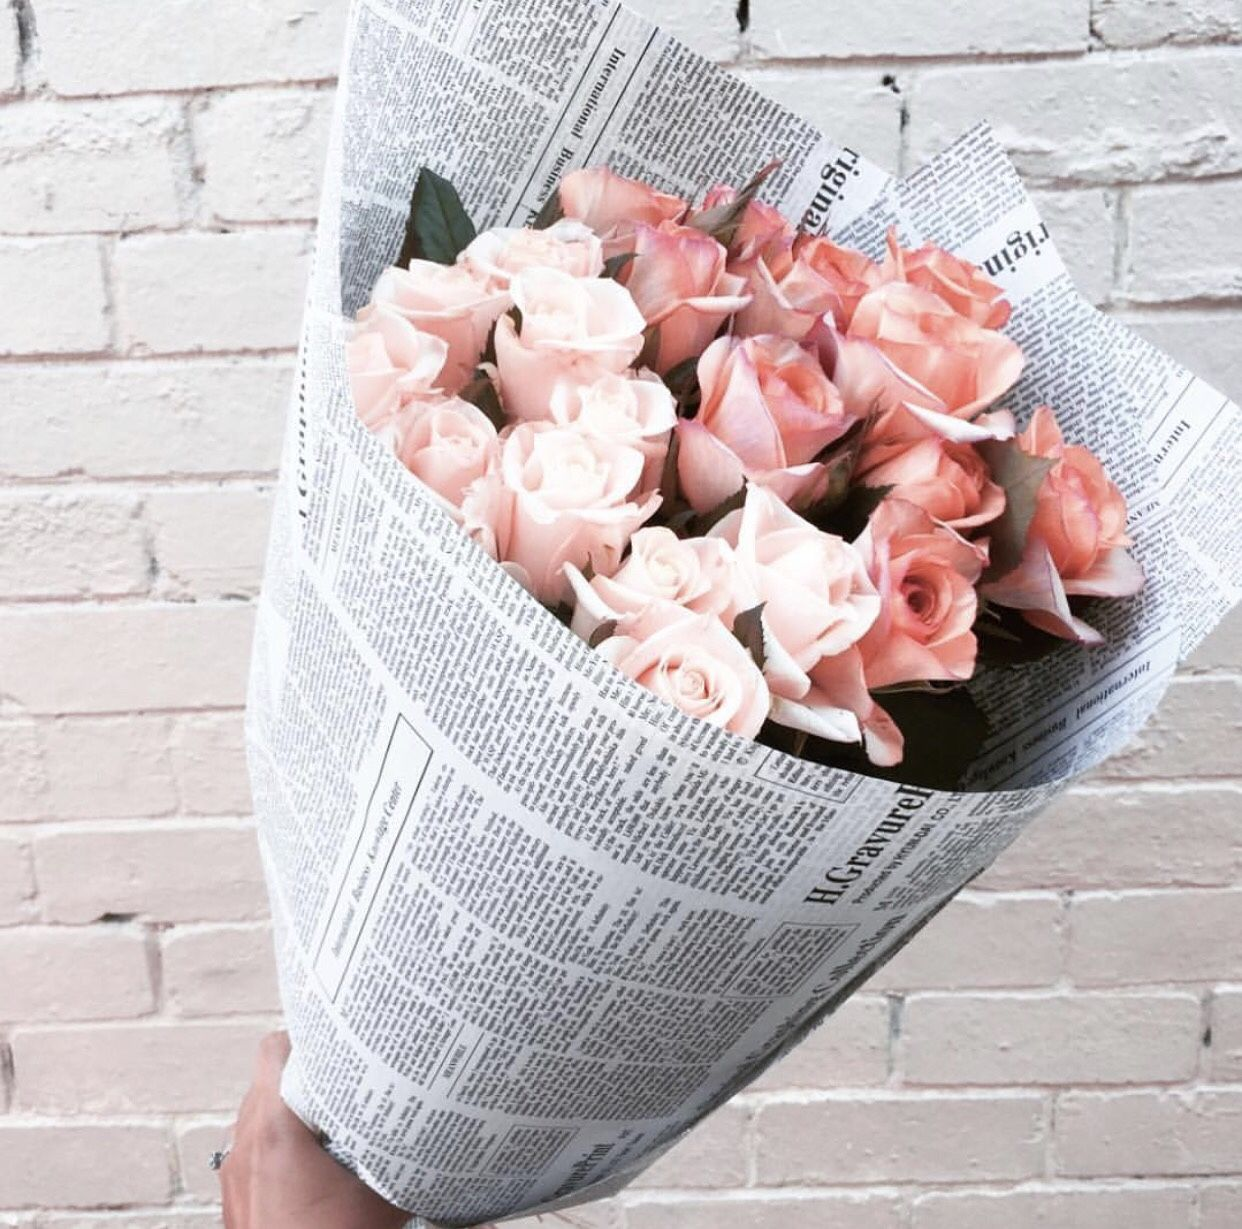 Paris prada pearls perfume shes got it pinterest whoever came up the idea of wrapping flowers in newspaper was brilliant have a beautiful day friends x izmirmasajfo